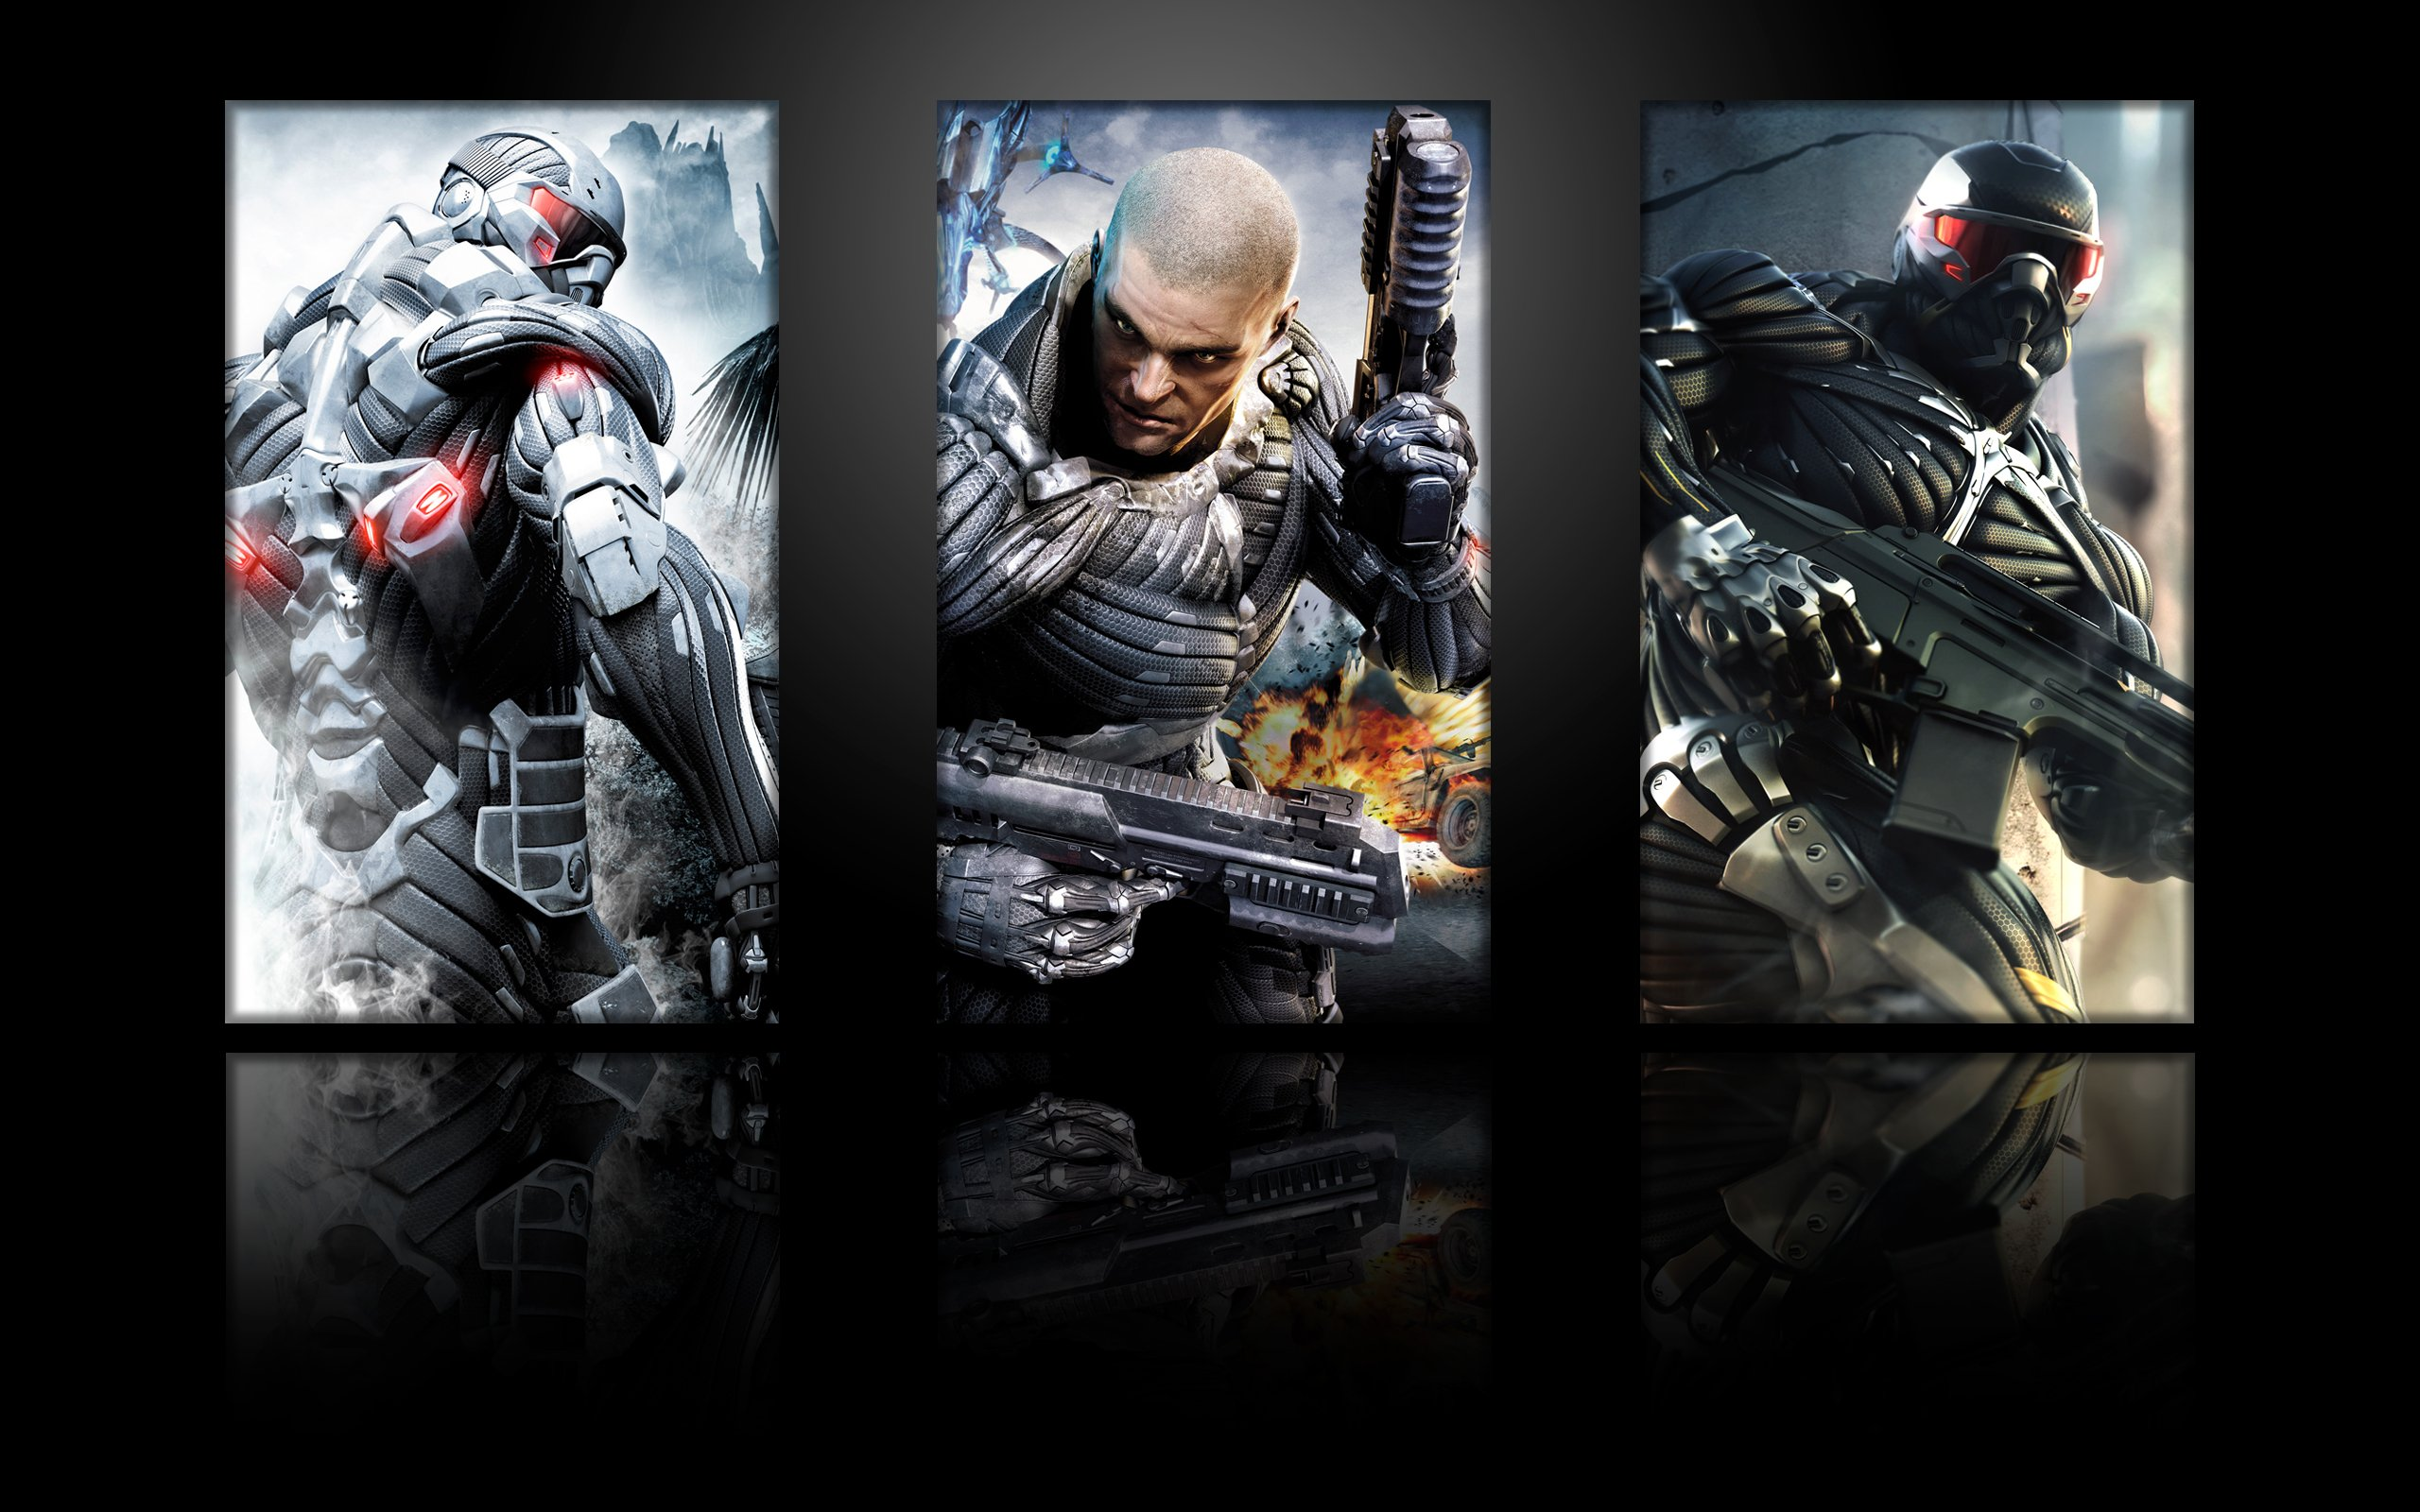 crysis 2 wallpapers or desktop backgrounds